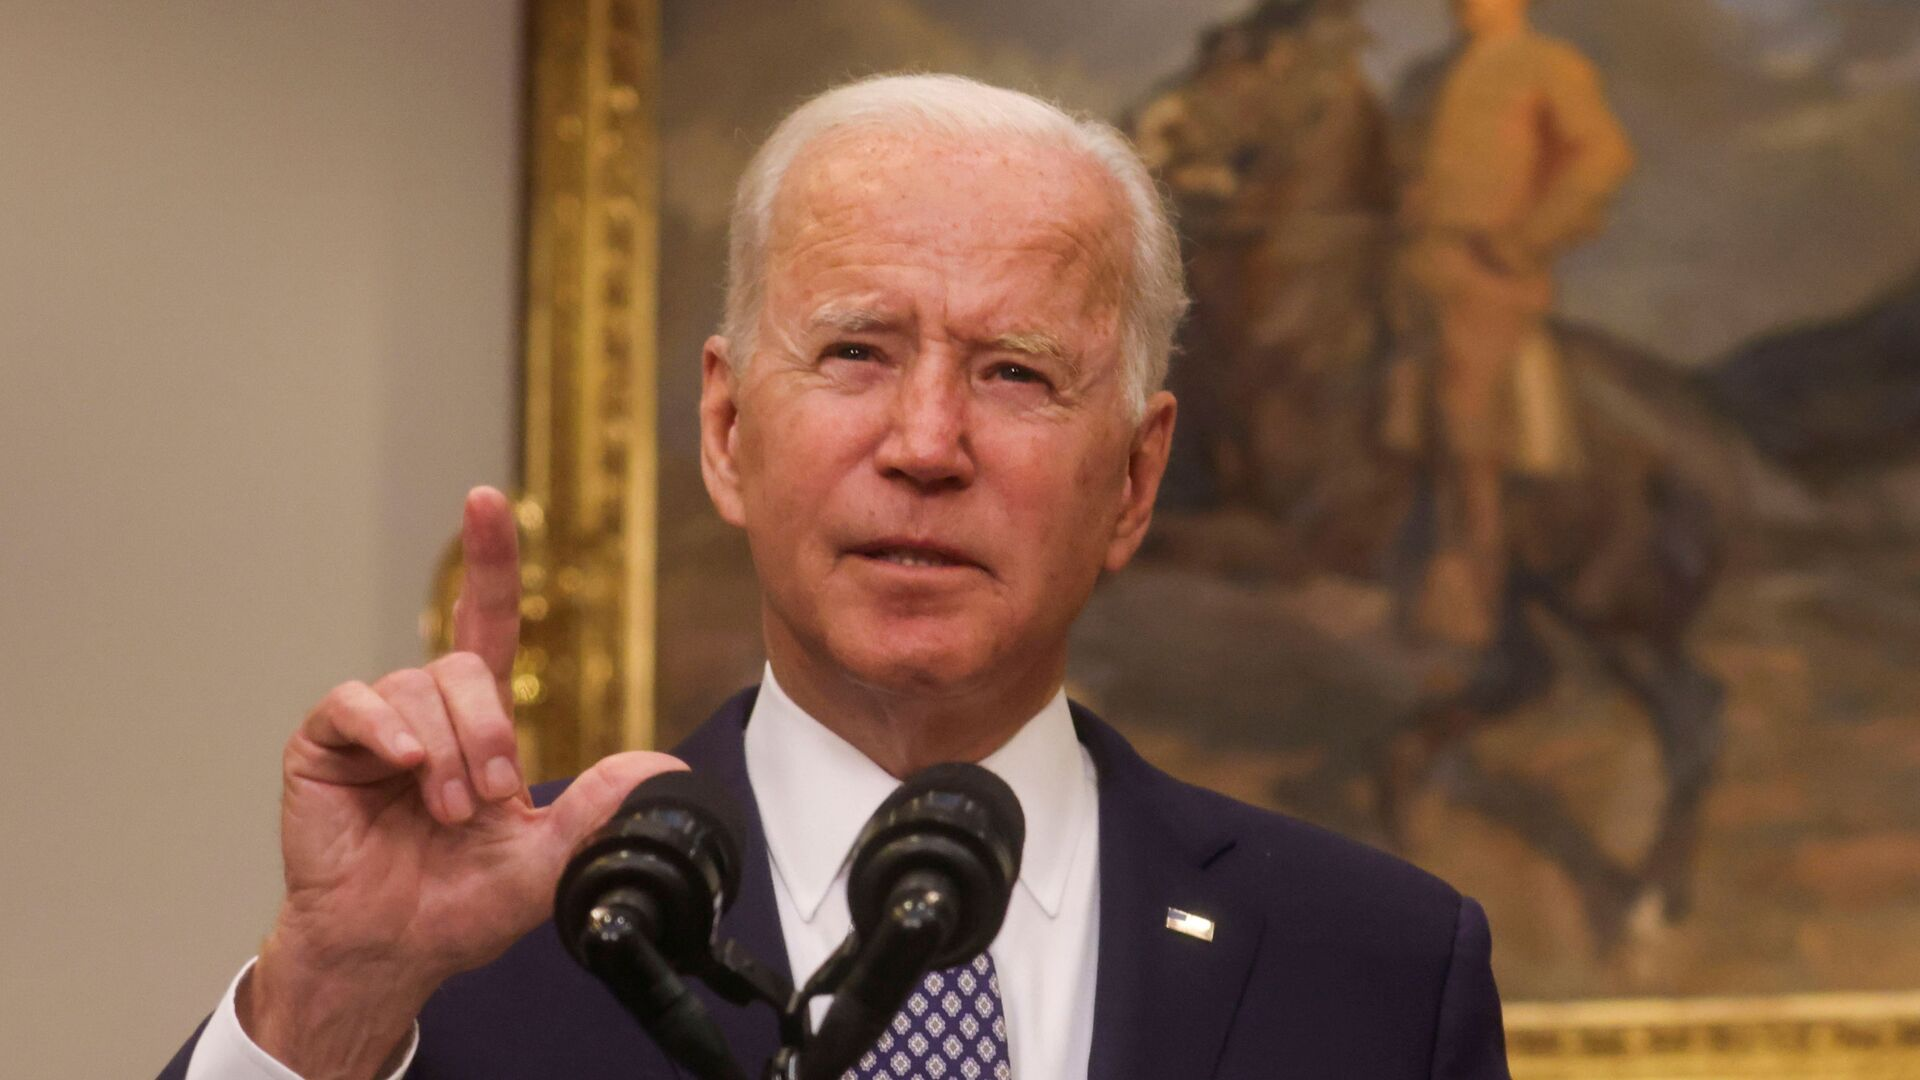 FILE PHOTO: U.S. President Joe Biden delivers remarks on the situation in Afghanistan, in the Roosevelt Room at the White House in Washington, U.S., August 24, 2021 - Sputnik International, 1920, 26.08.2021